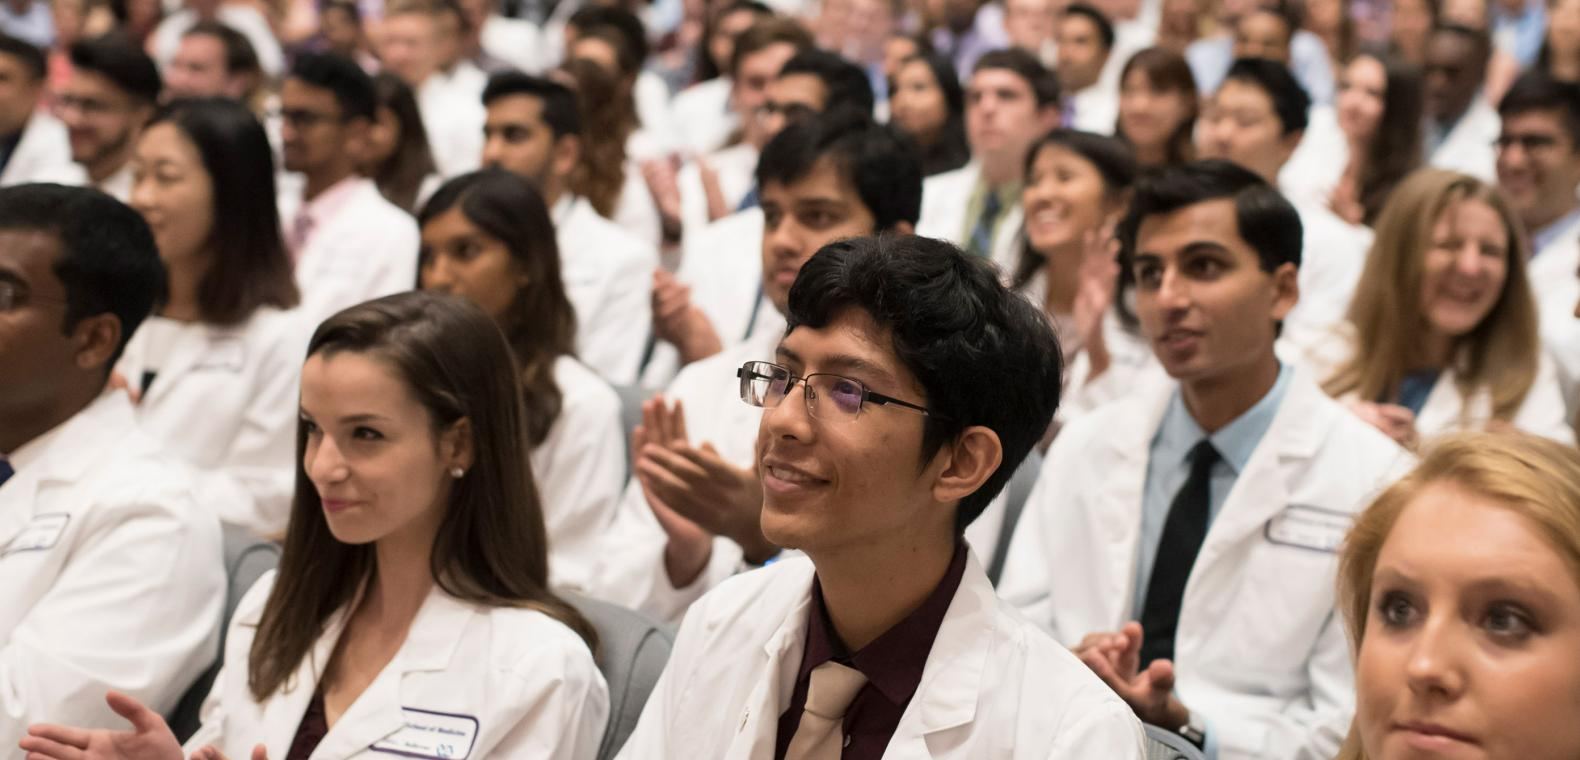 Participants At NYU School of Medicine White Coat Ceremony